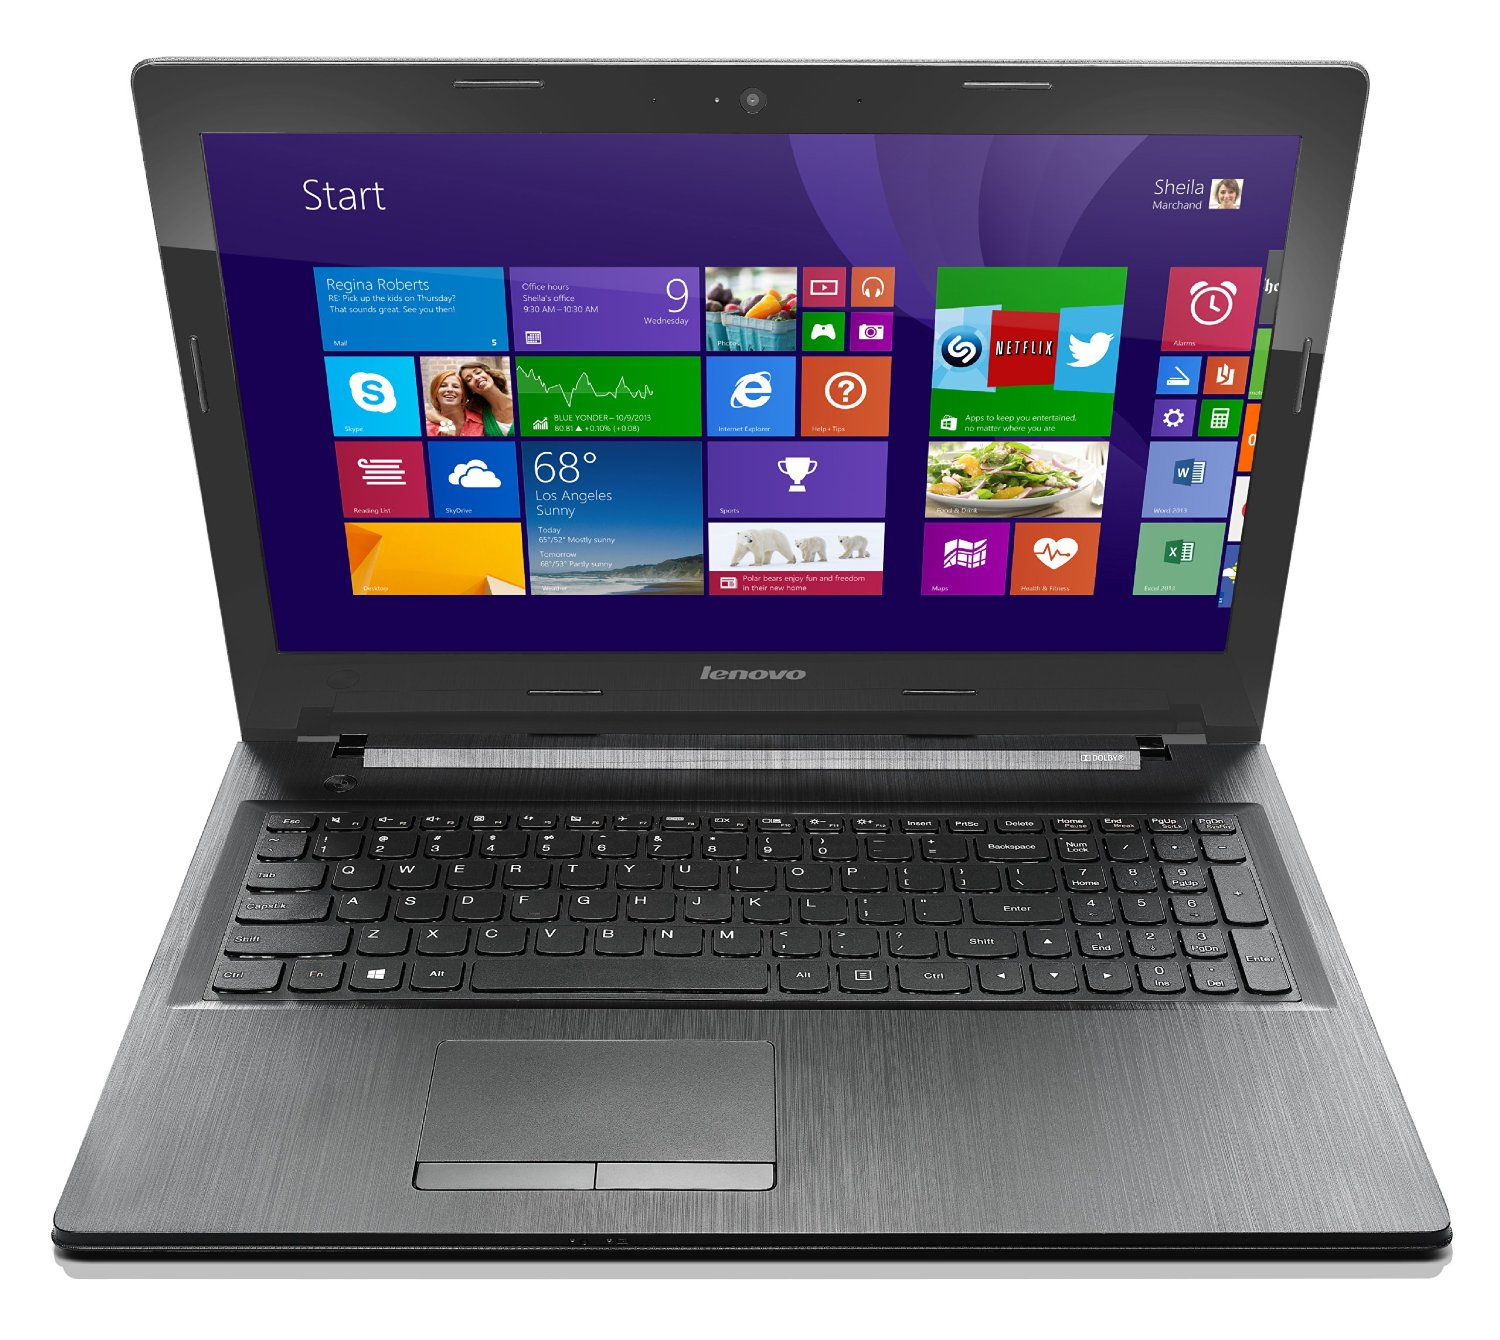 Lenovo G50 15.6-Inch Laptop (80E501B2US)